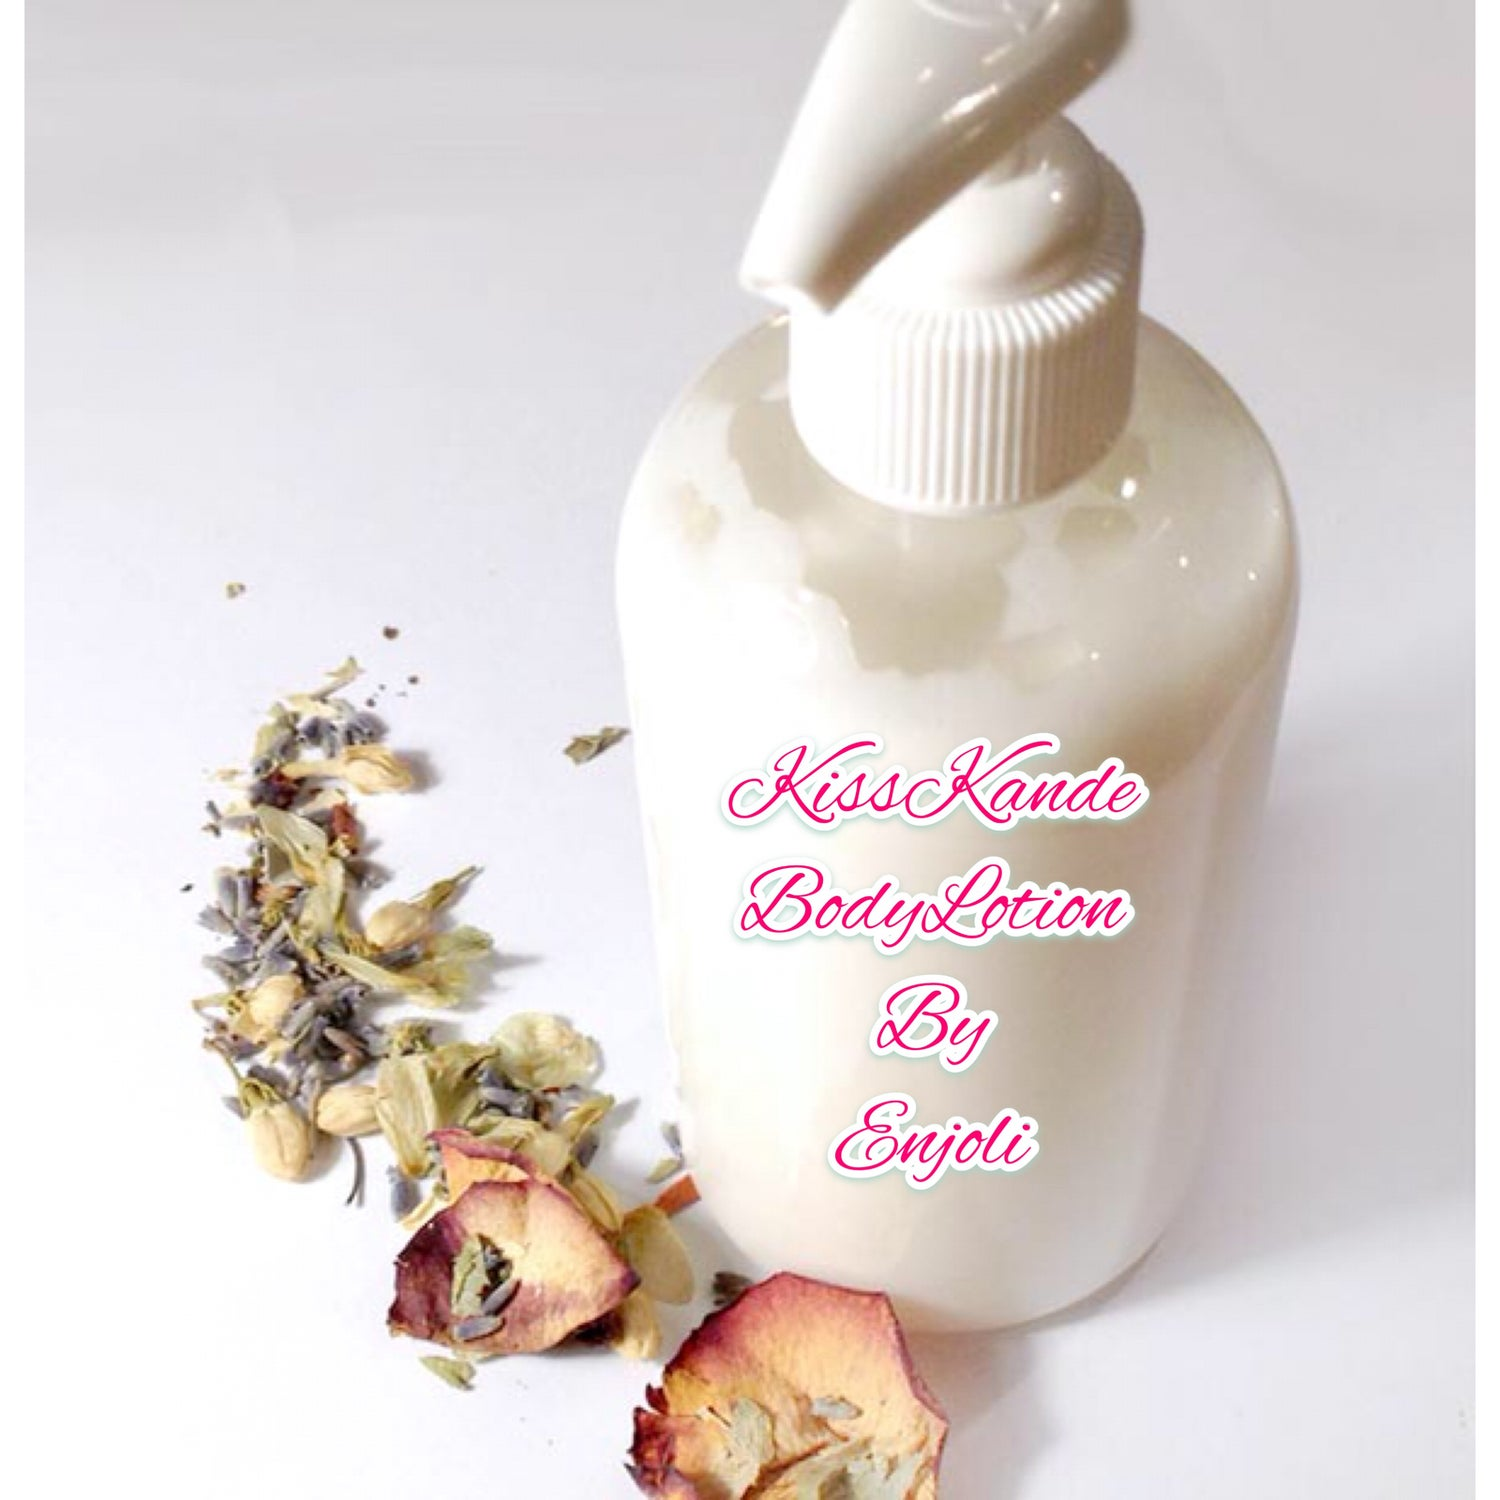 Image of KissKande Body Lotion